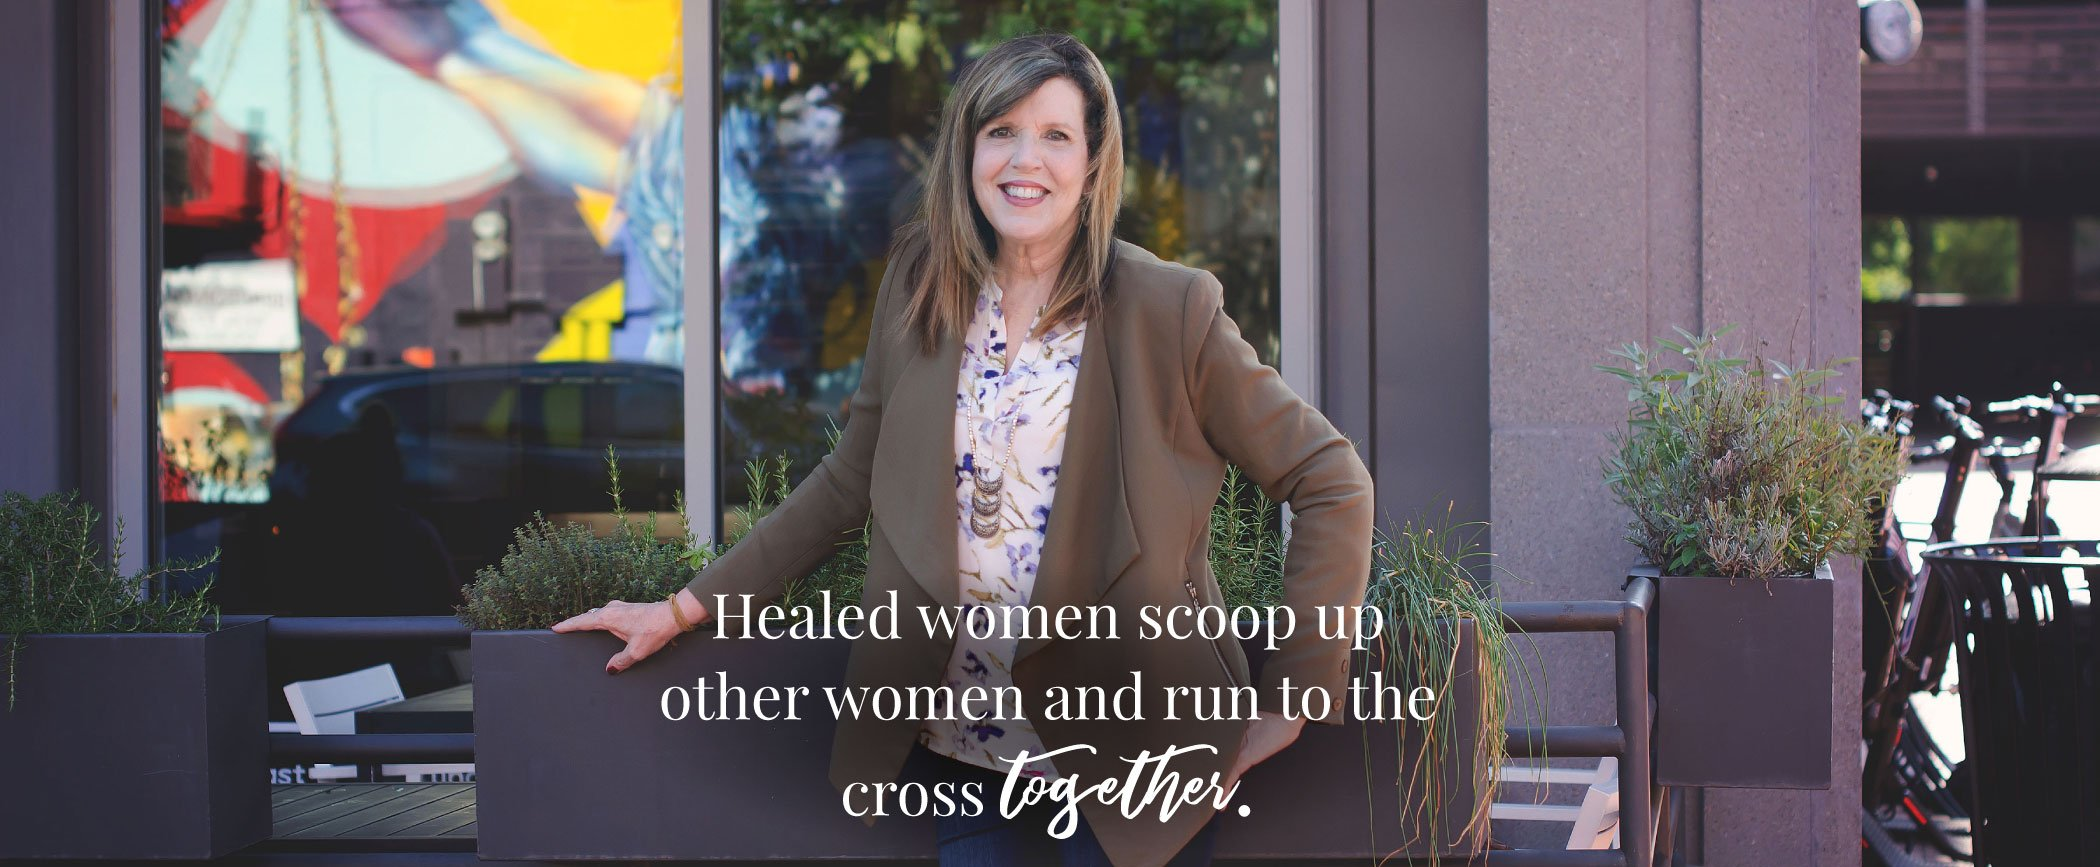 Suzie smiling - Healed women run to the Cross together